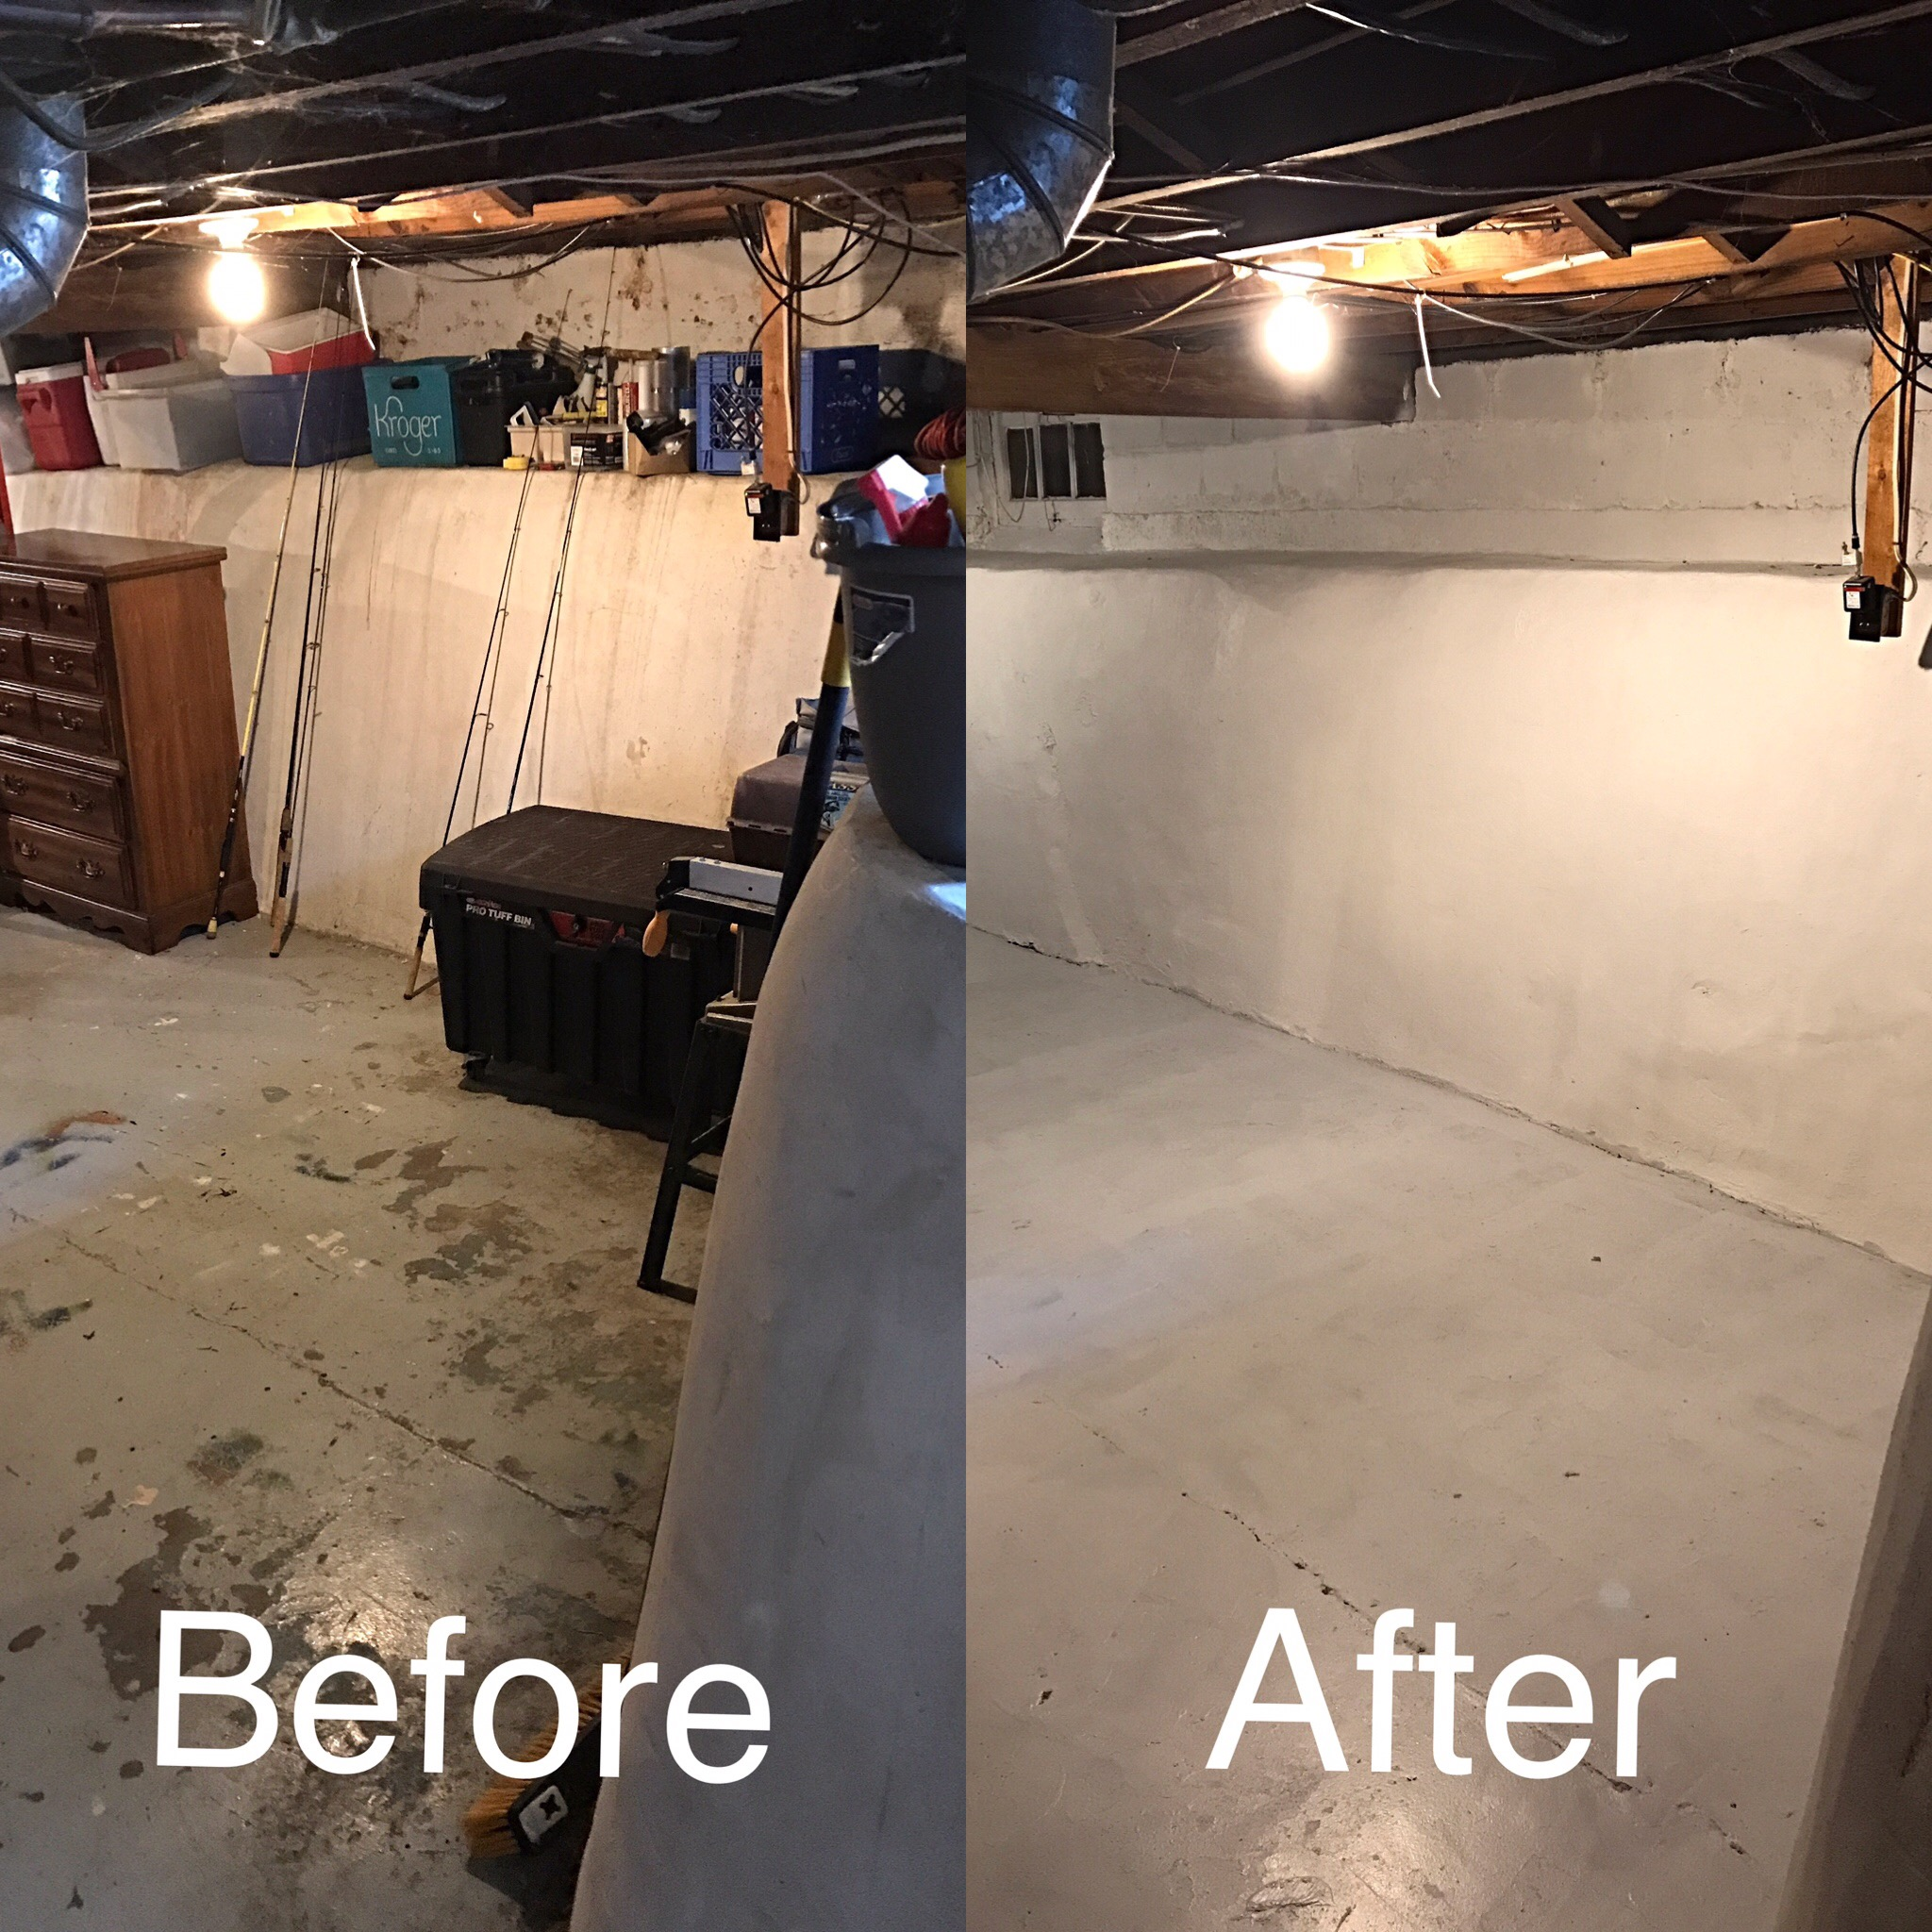 Click image to see more photos from my Basement projects.